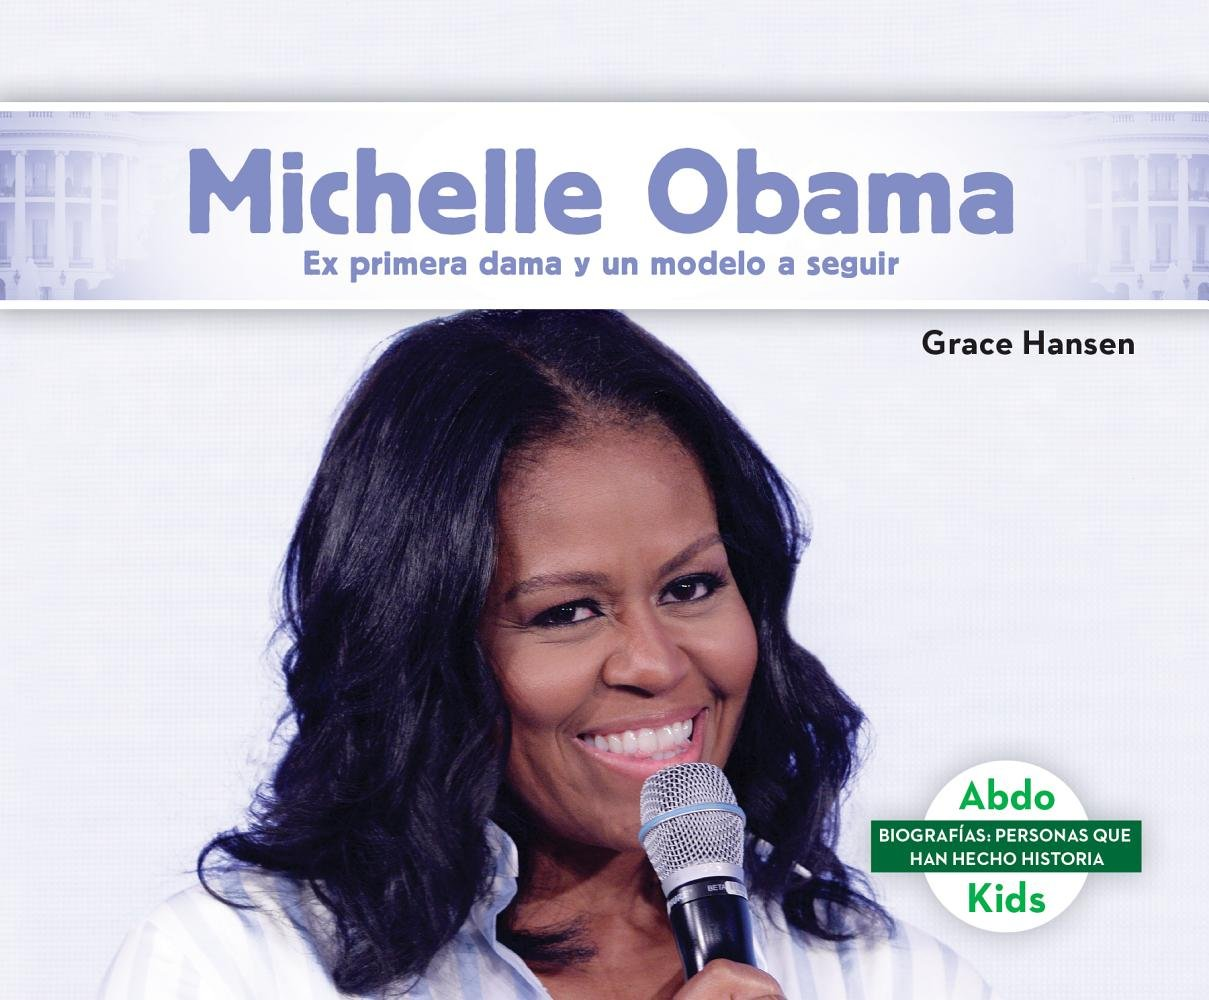 Michelle Obama: Ex primera dama y un modelo a seguir/Former first lady and a role model (Biografías: Personas que han hecho historia/Biographies: People who have made history) (Spanish Edition)